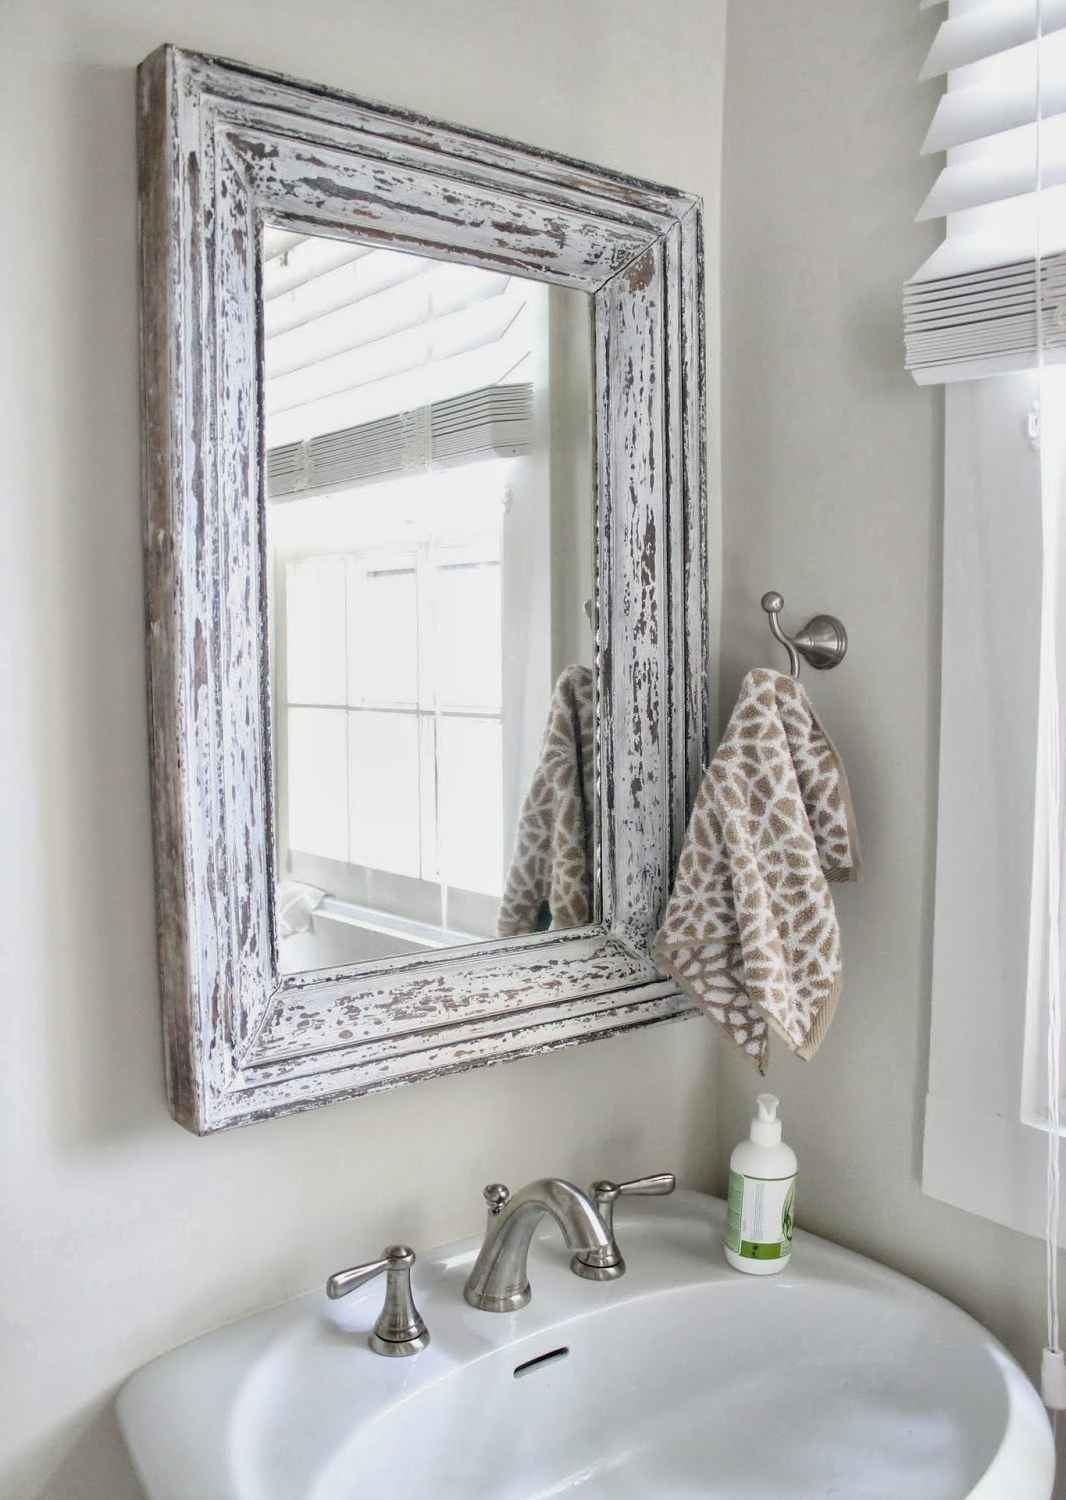 Elegant Shab Chic Bathroom Mirrors 17 With Shab Chic Bathroom Regarding Shabby Chic Bathroom Mirrors (Image 3 of 15)